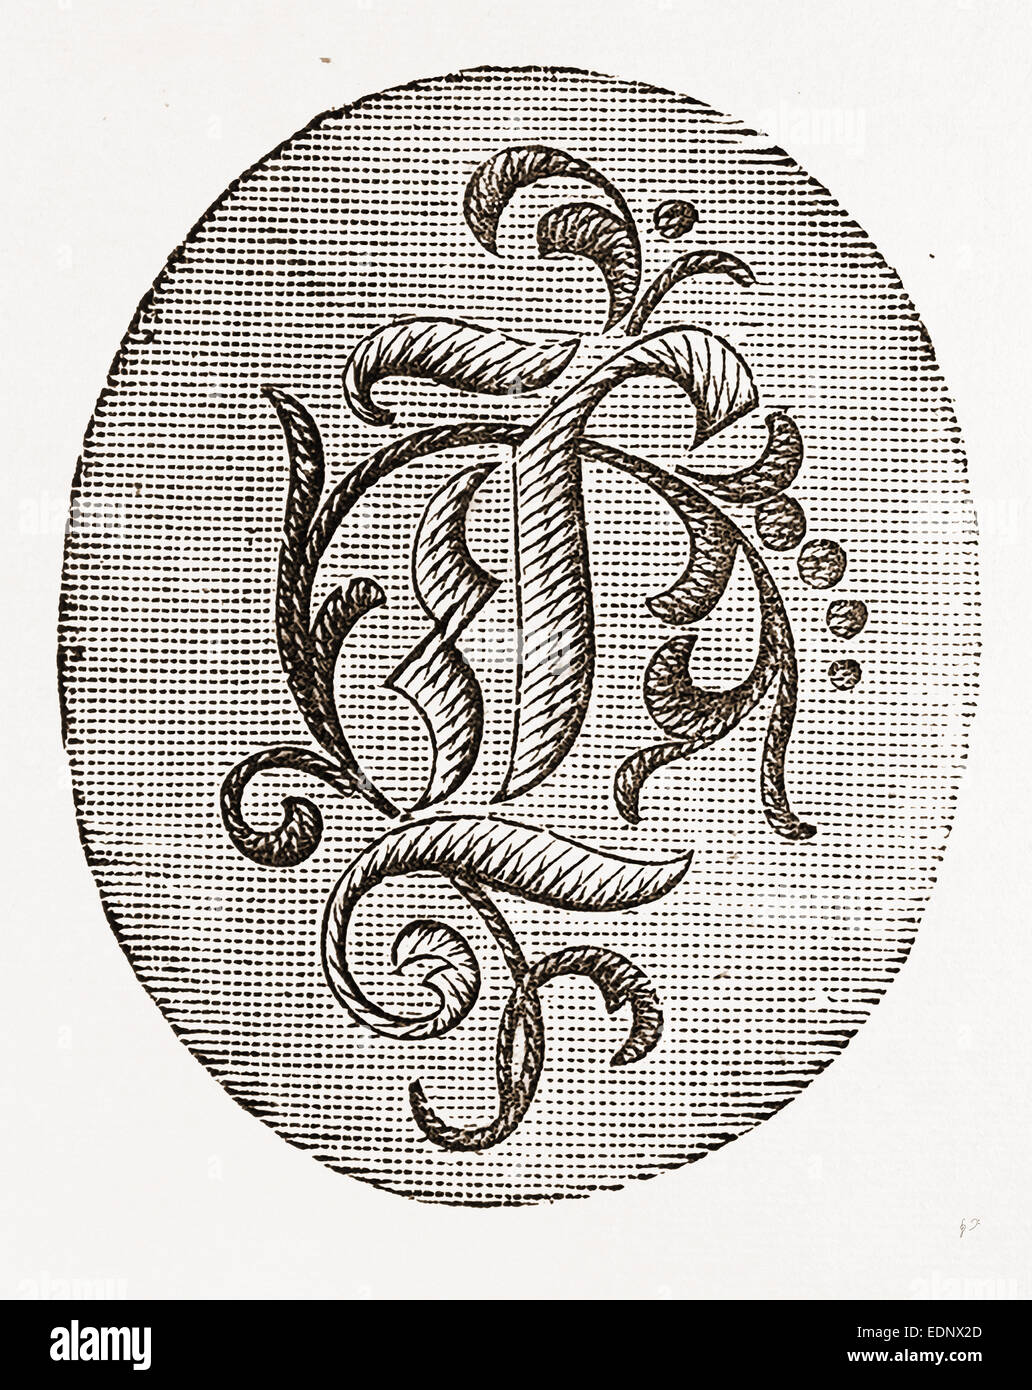 2 3 INITIAL FOR UNDERLINEN, NEEDLEWORK, 19th CENTURY EMBROIDERY - Stock Image